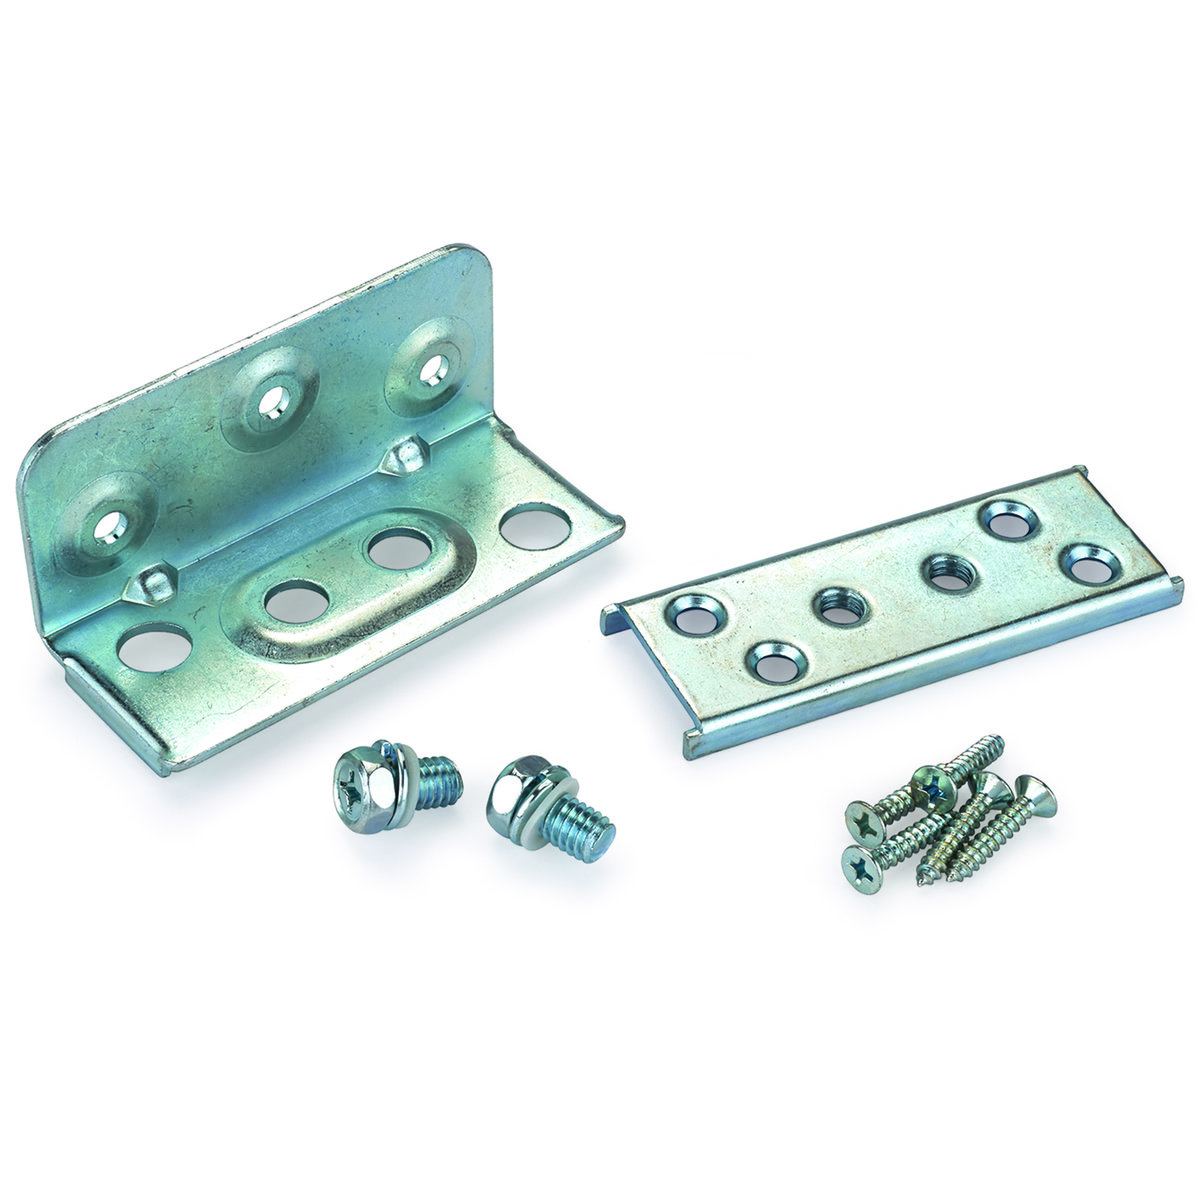 Surface-Mount Knock Down Low Profile Bed Frame Hardware